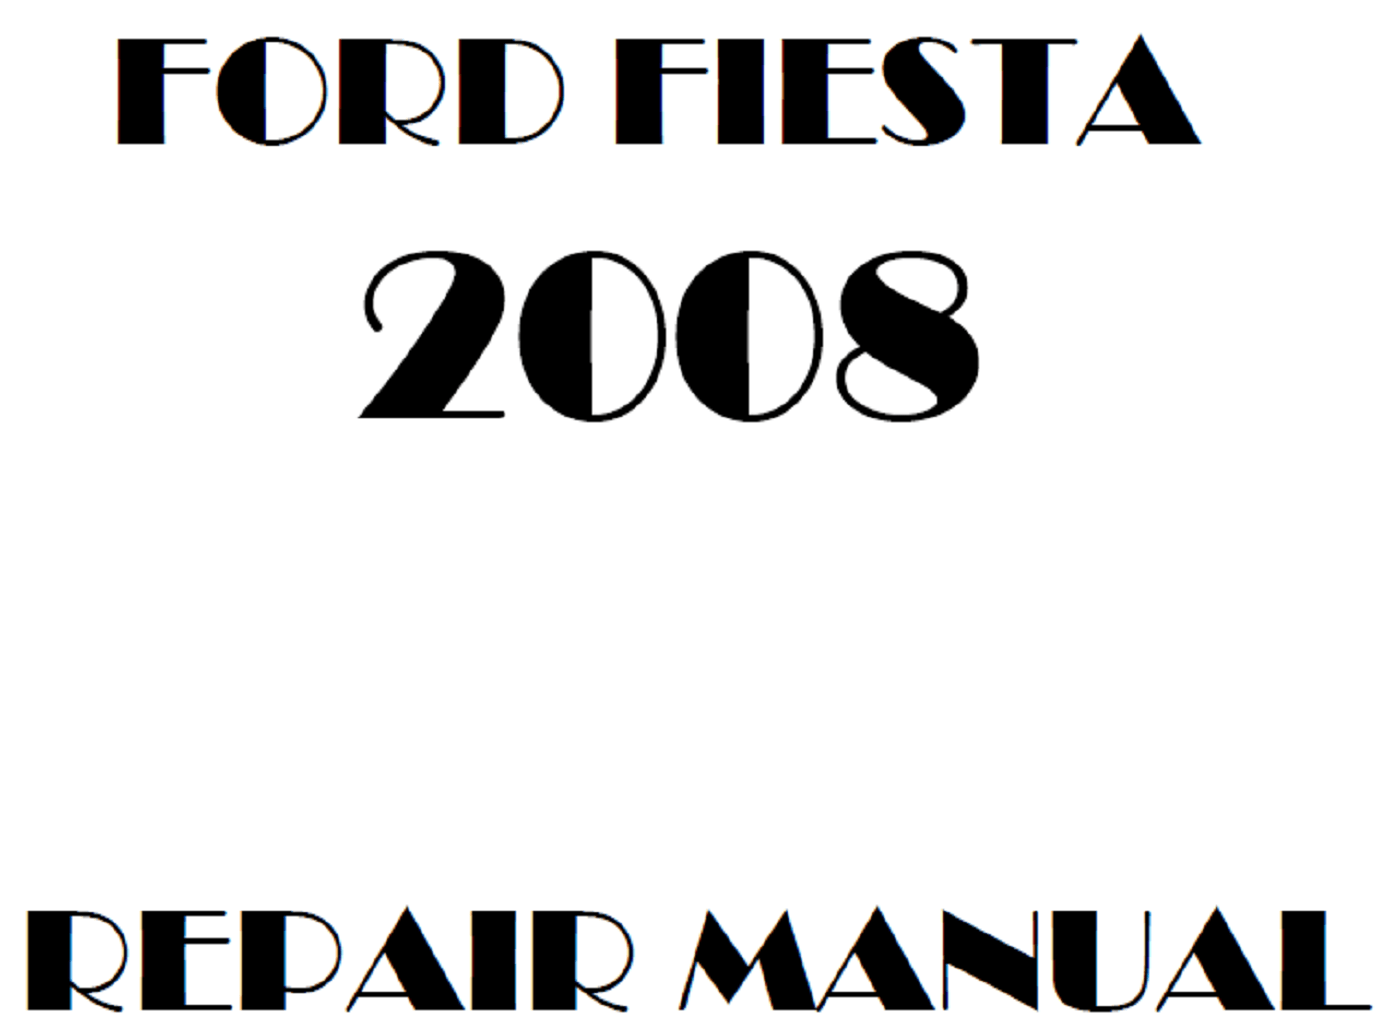 2008 Ford Fiesta repair manual